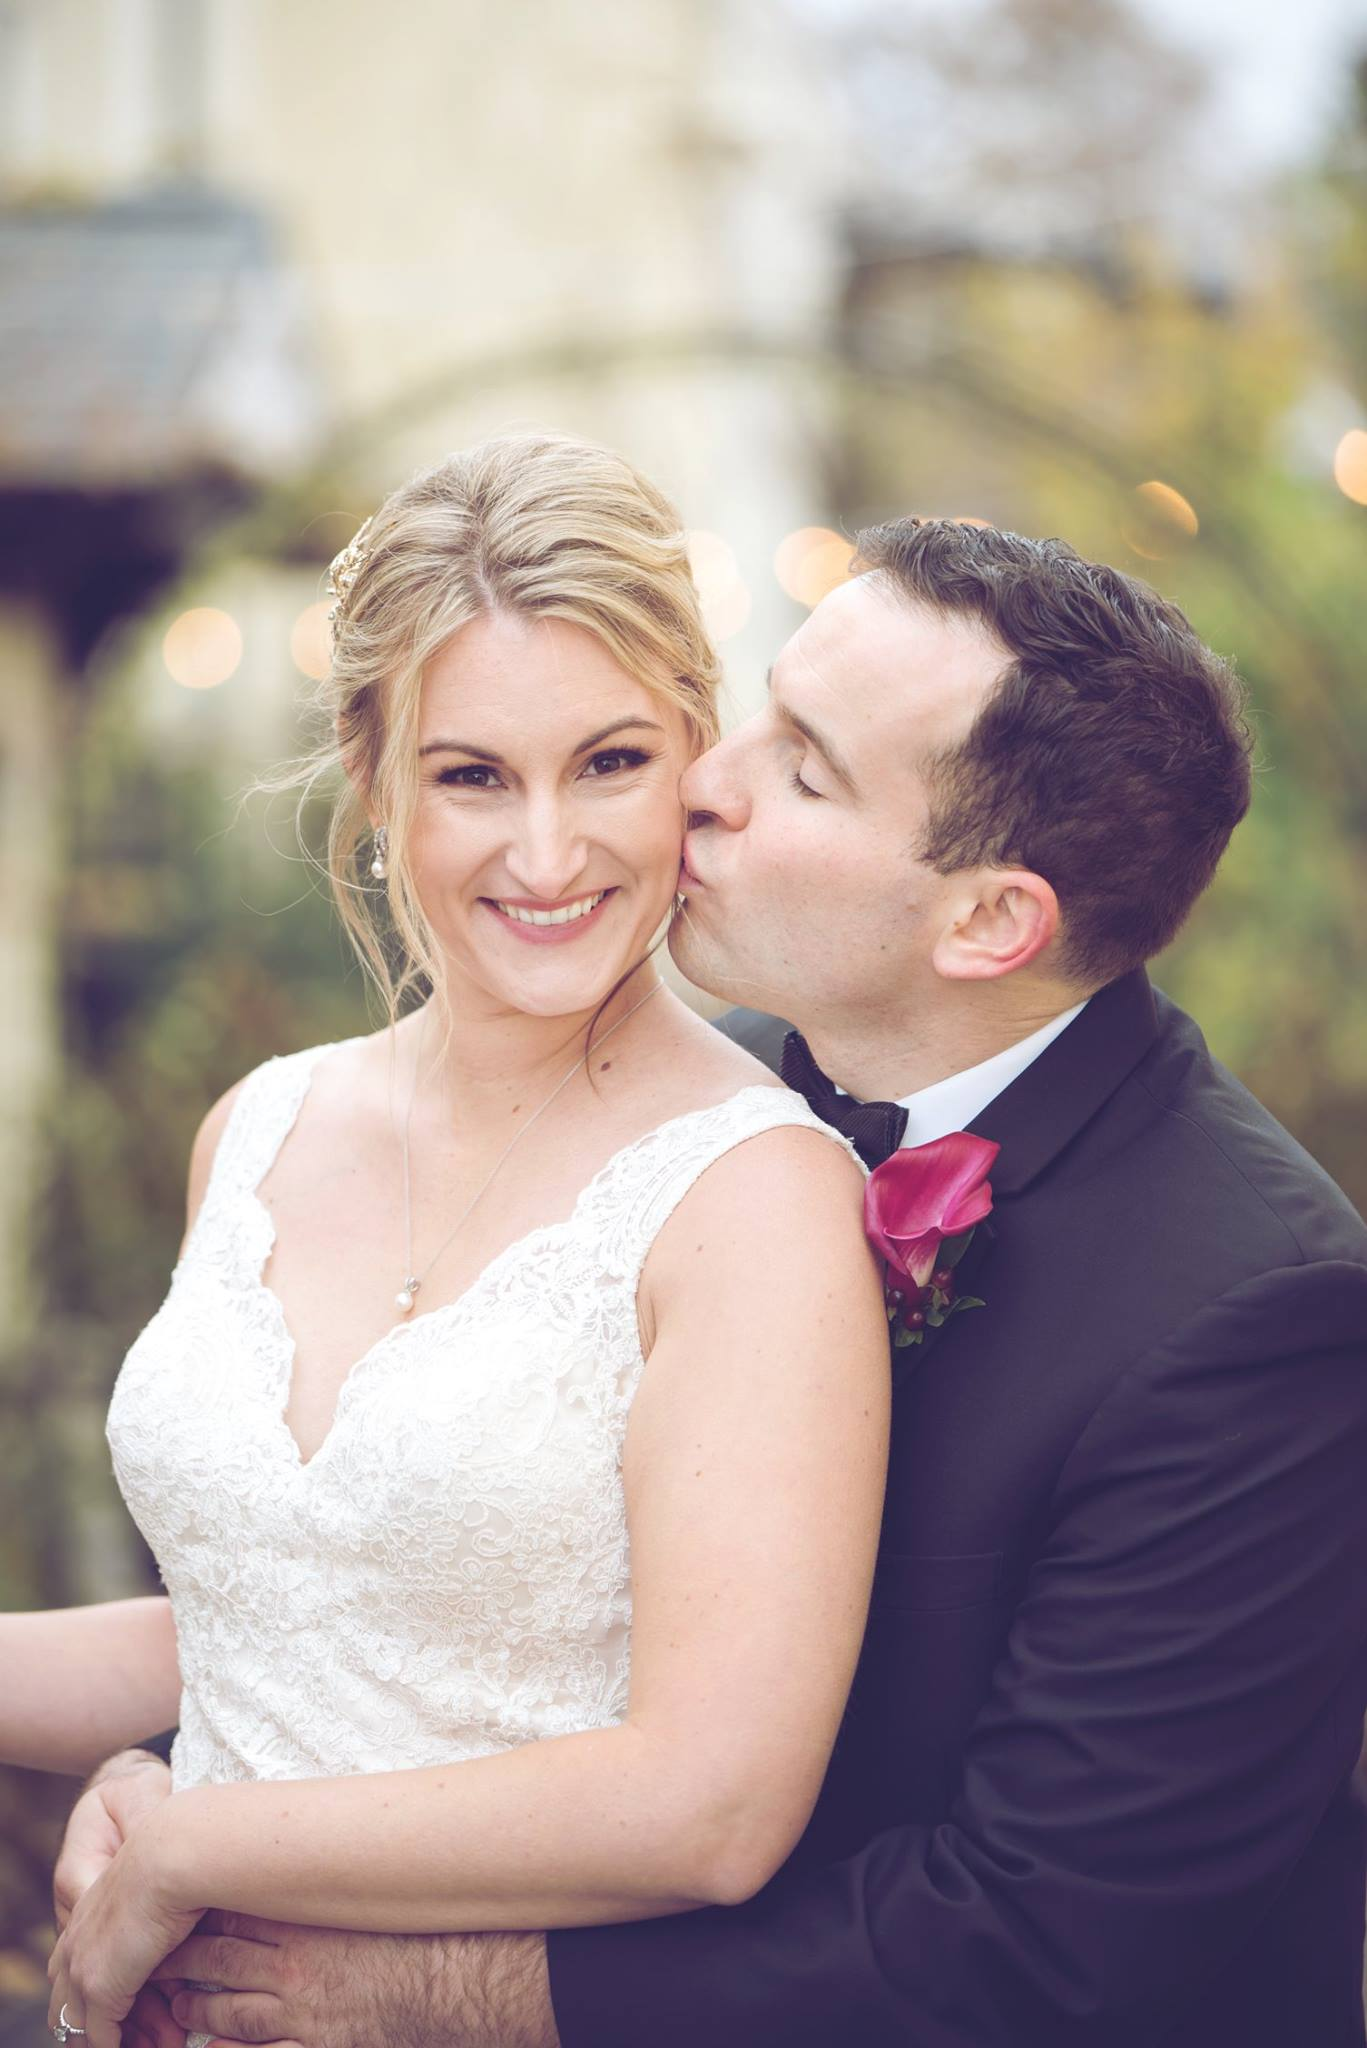 Danielle Albrecht all inclusive wedding photographer for fab weddings, grey and burgundy